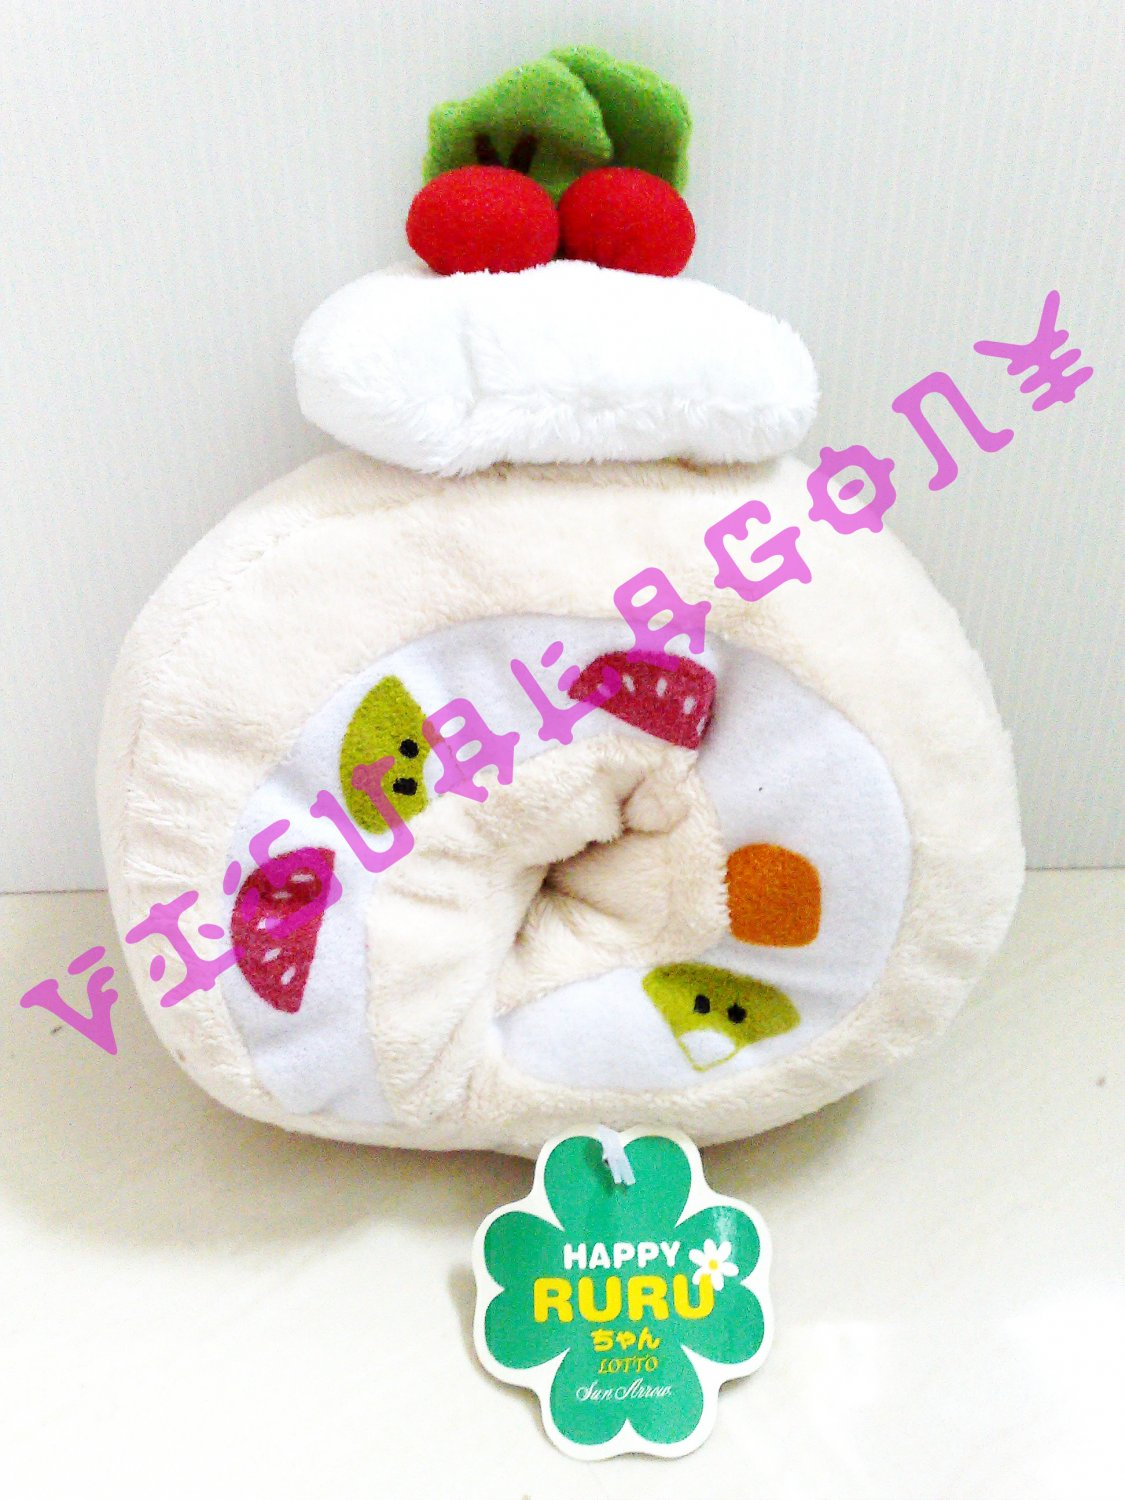 Kawaii Cream Roll Cake Plush